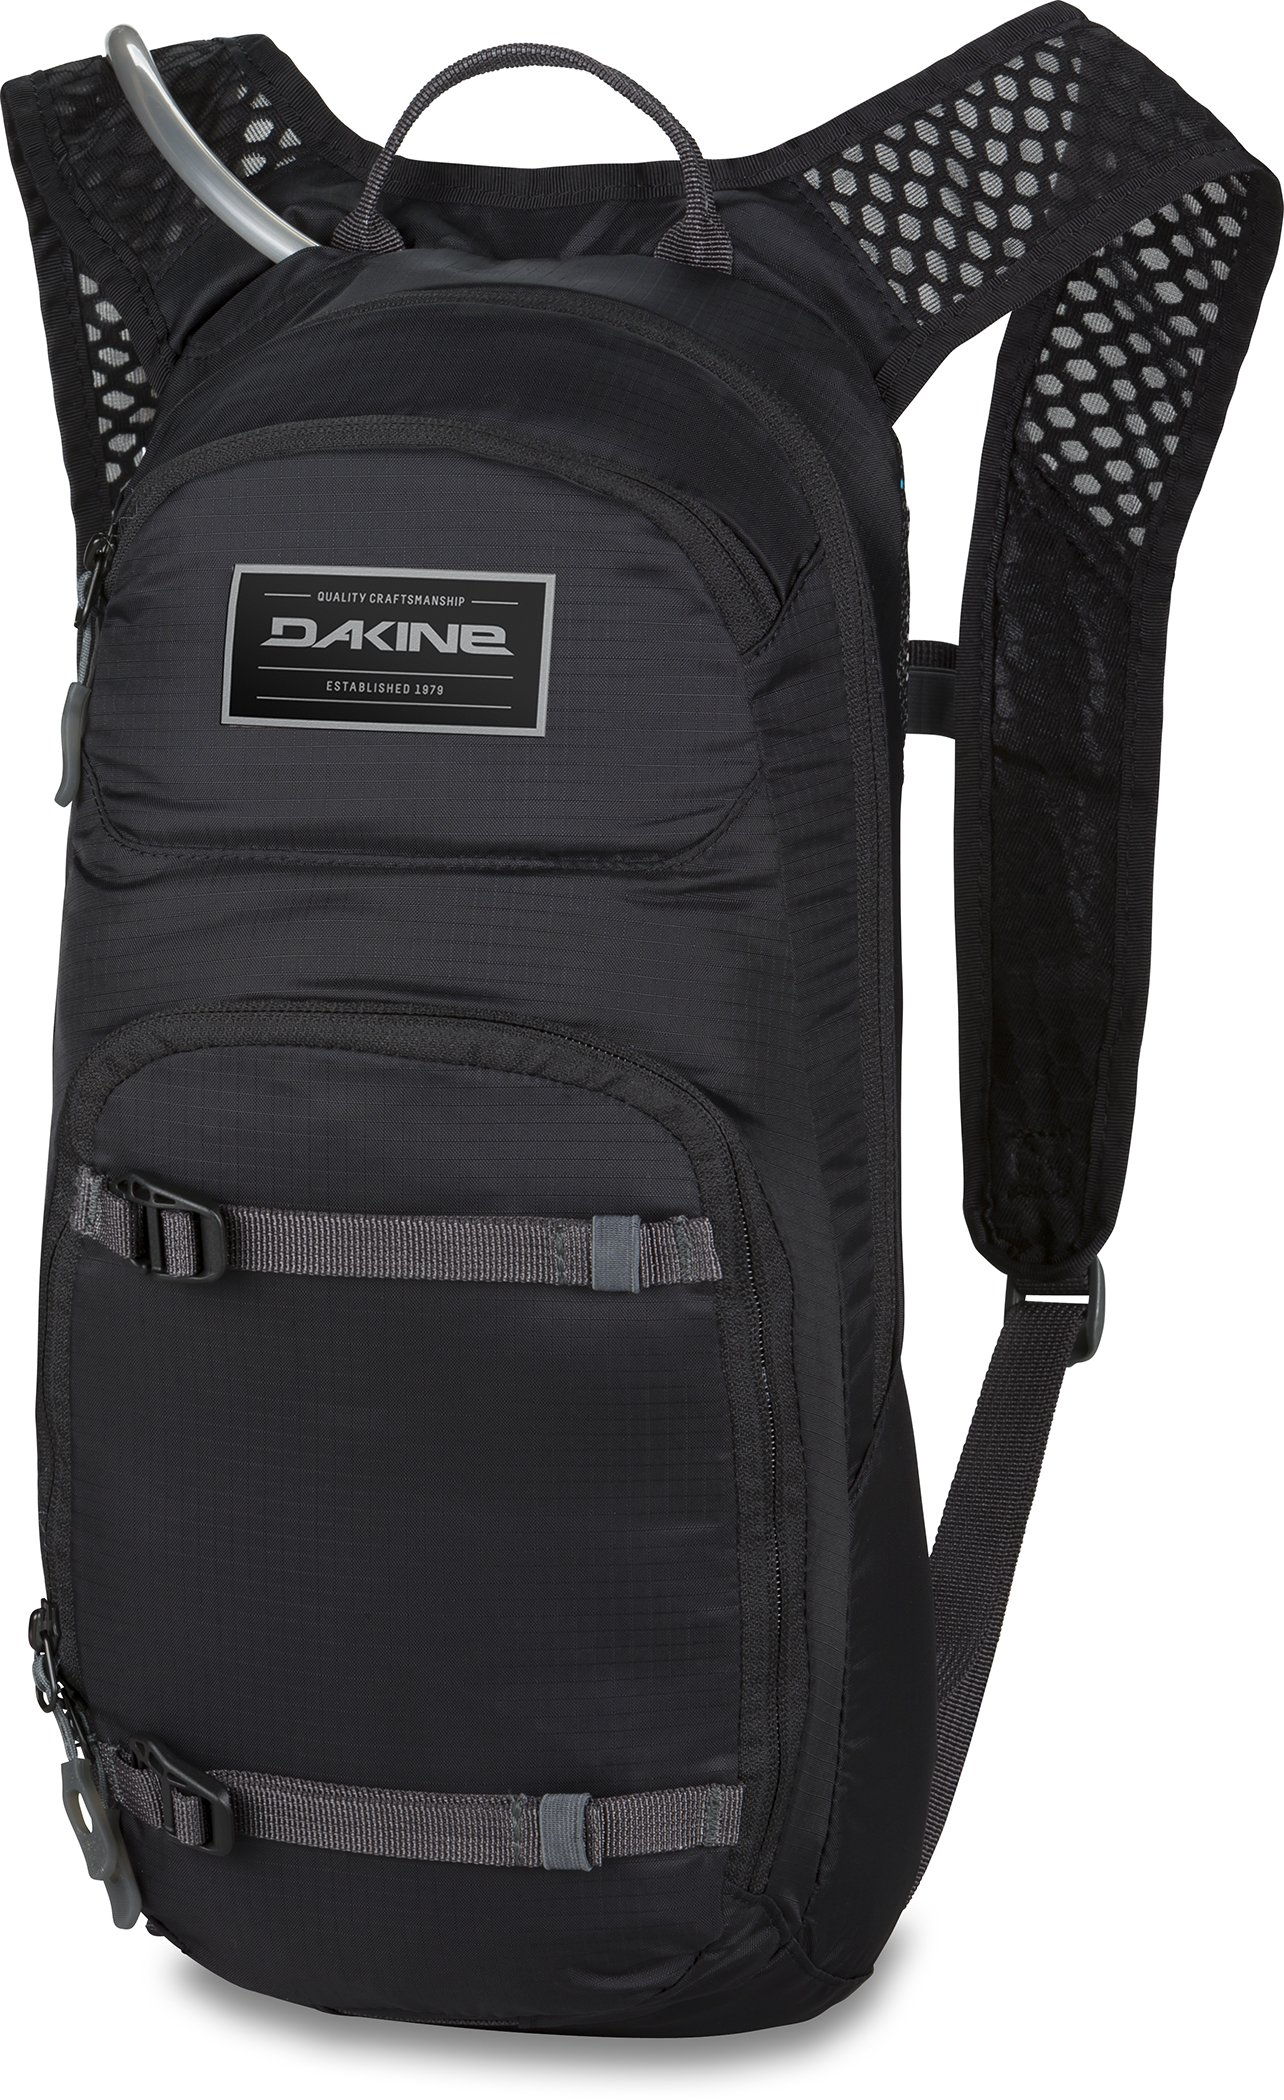 Dakine Men's Session 8L Hydration Backpack, Black, OS by Dakine (Image #1)